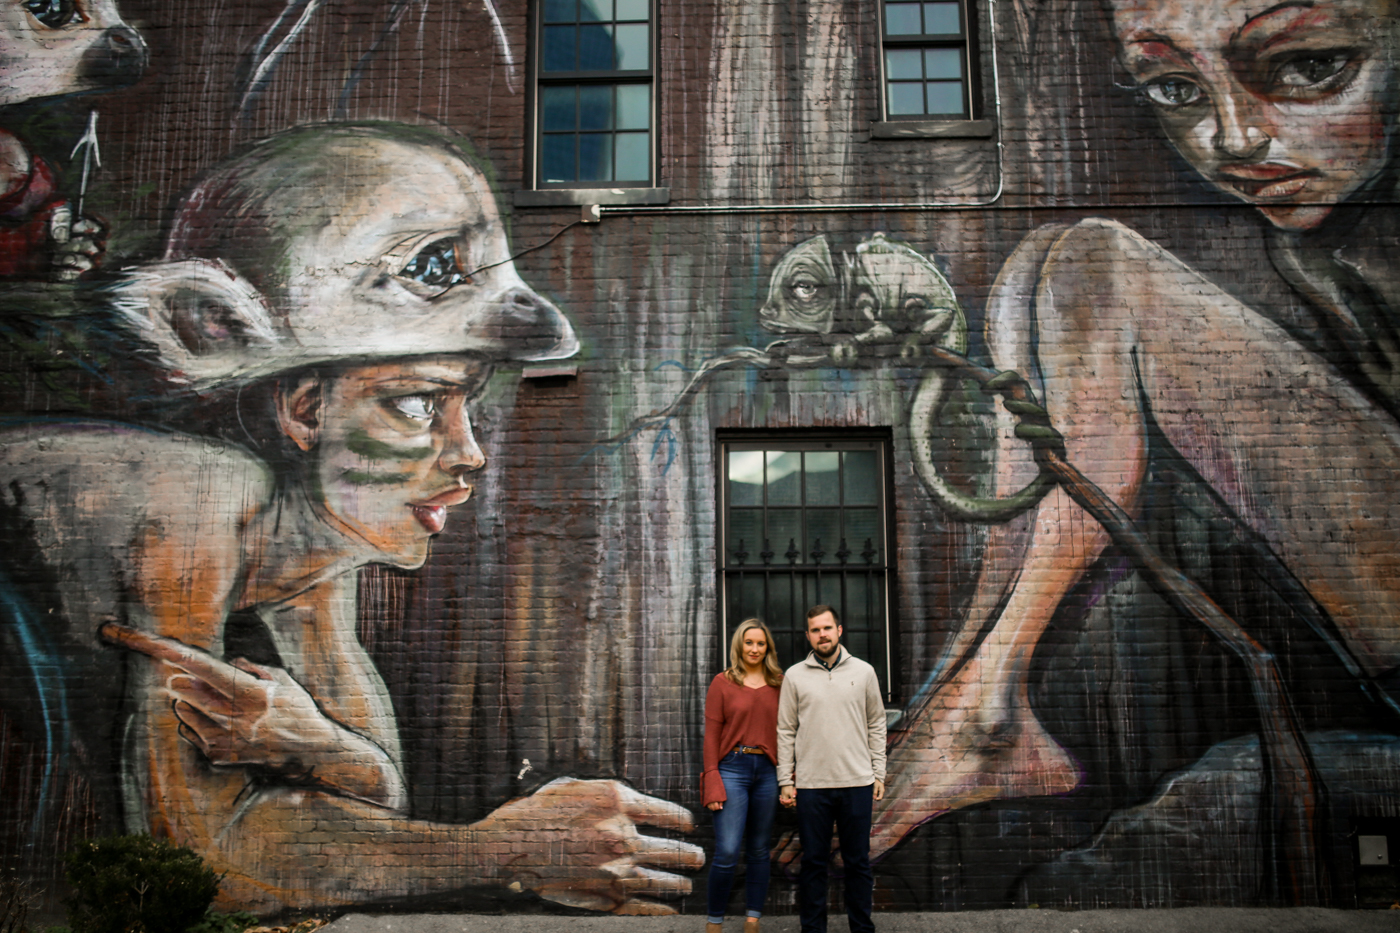 Downtown-Lexington-Mural-Prhtbn-Dog-Engagement-Wedding-Photography-8.jpg